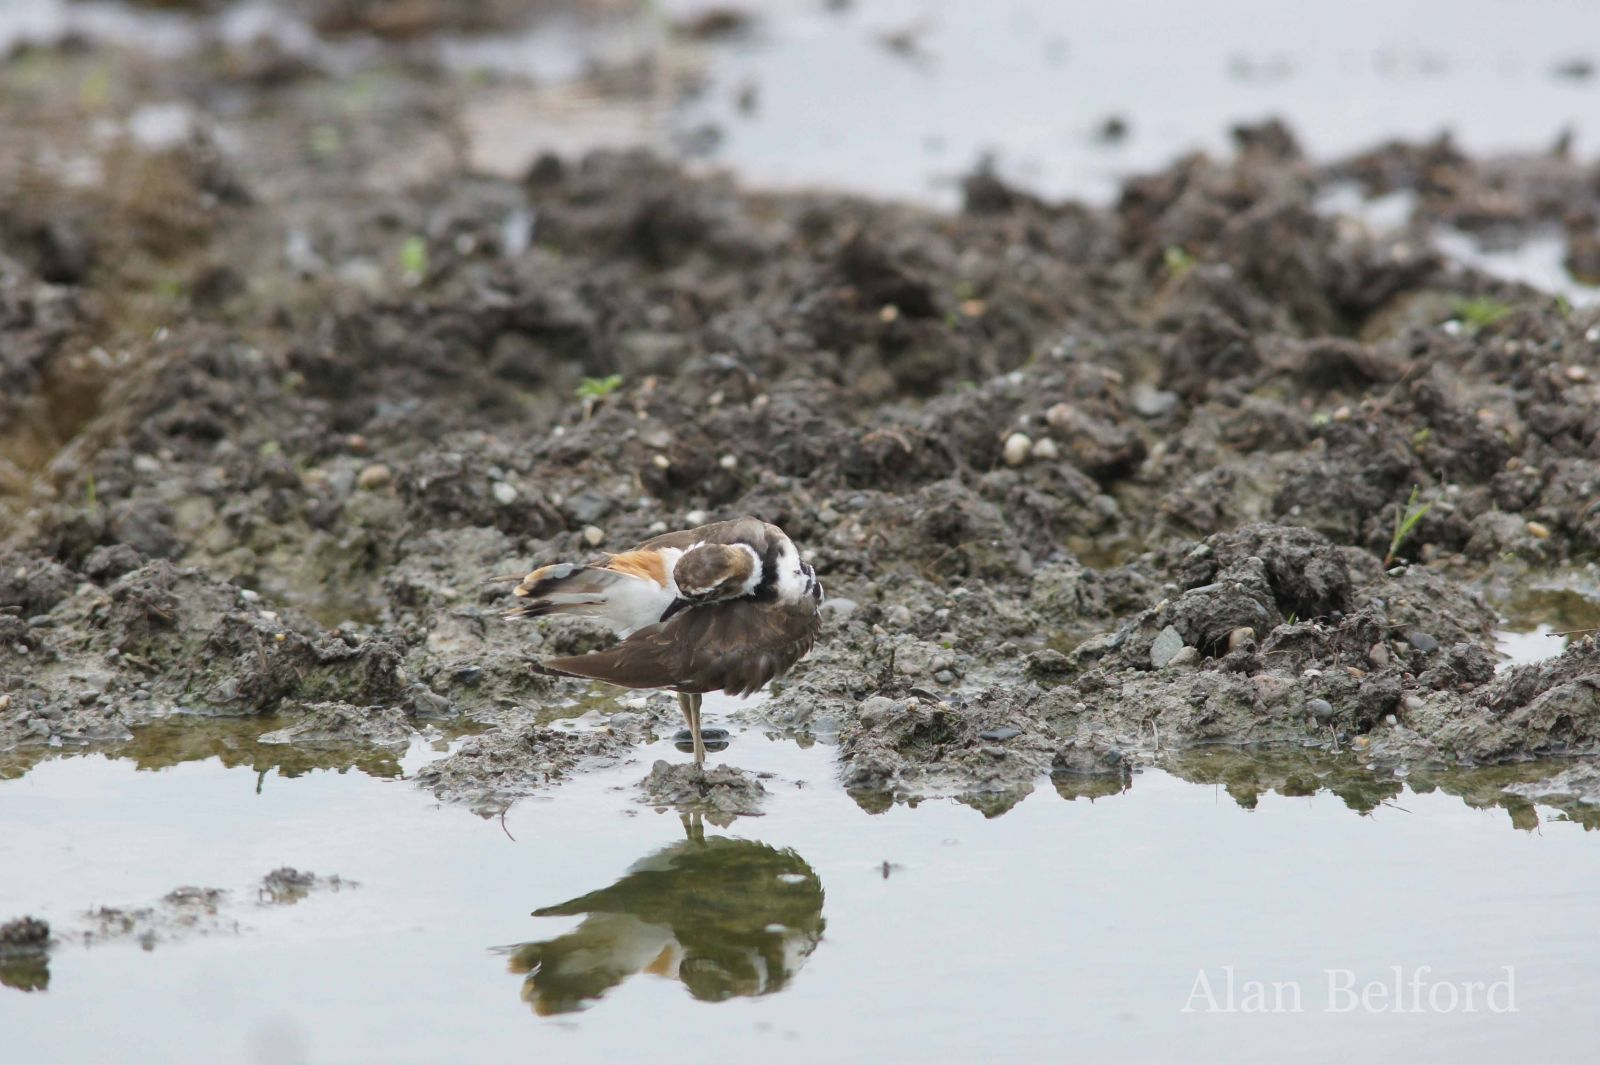 Calling Killdeer greeted me as I arrived at The Wild Center.